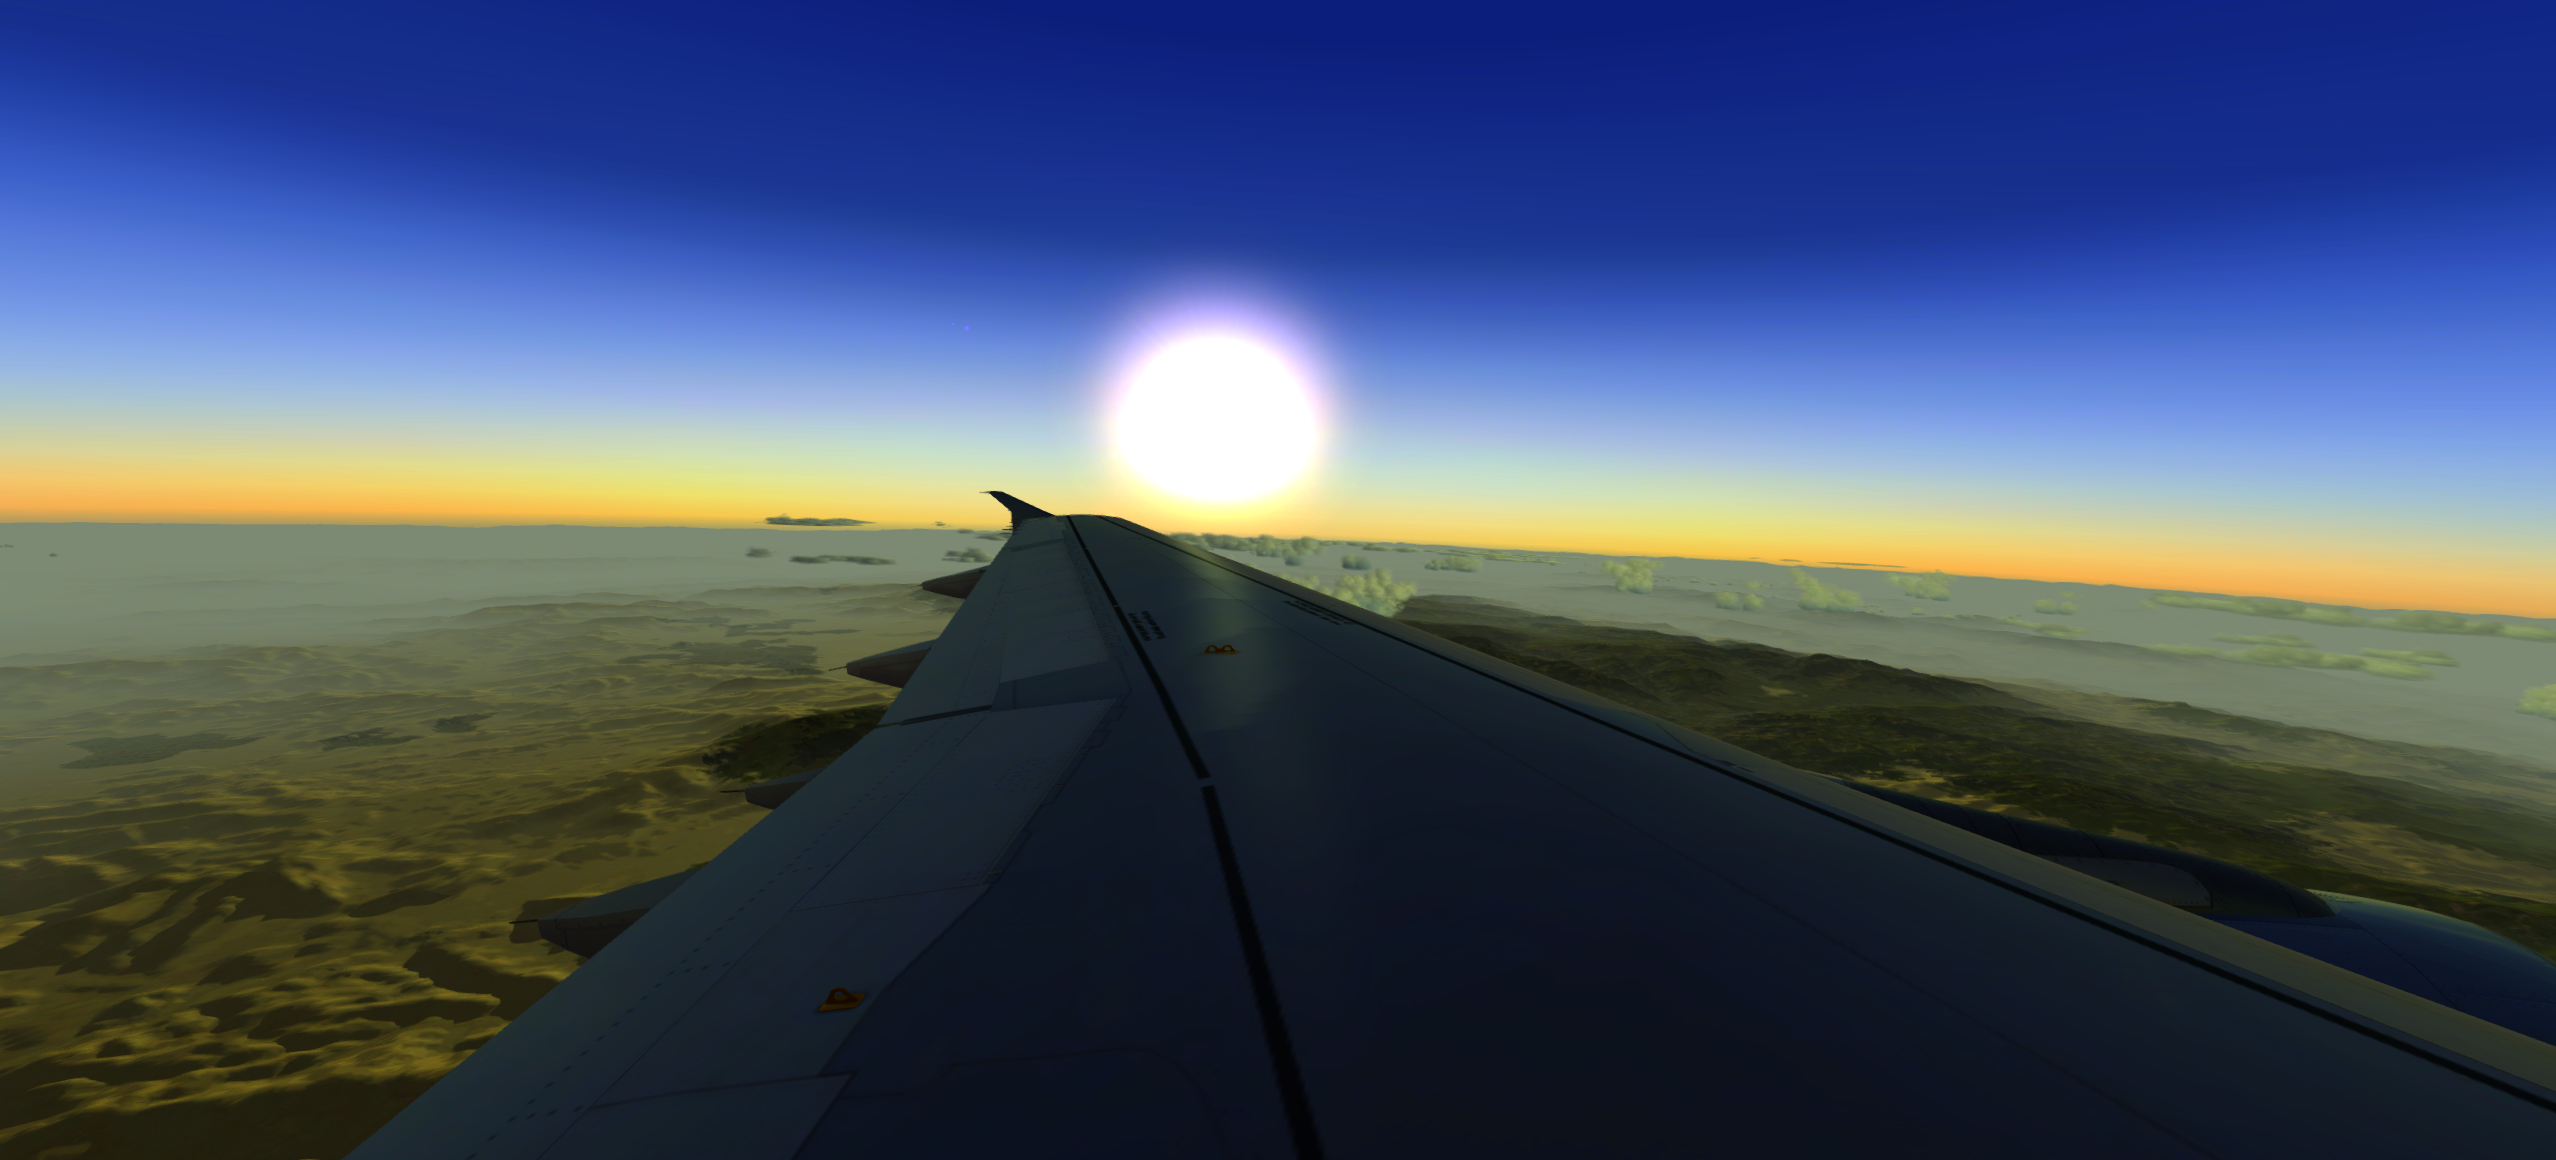 fsx%202015-07-05%2014-03-39-128.png?dl=0